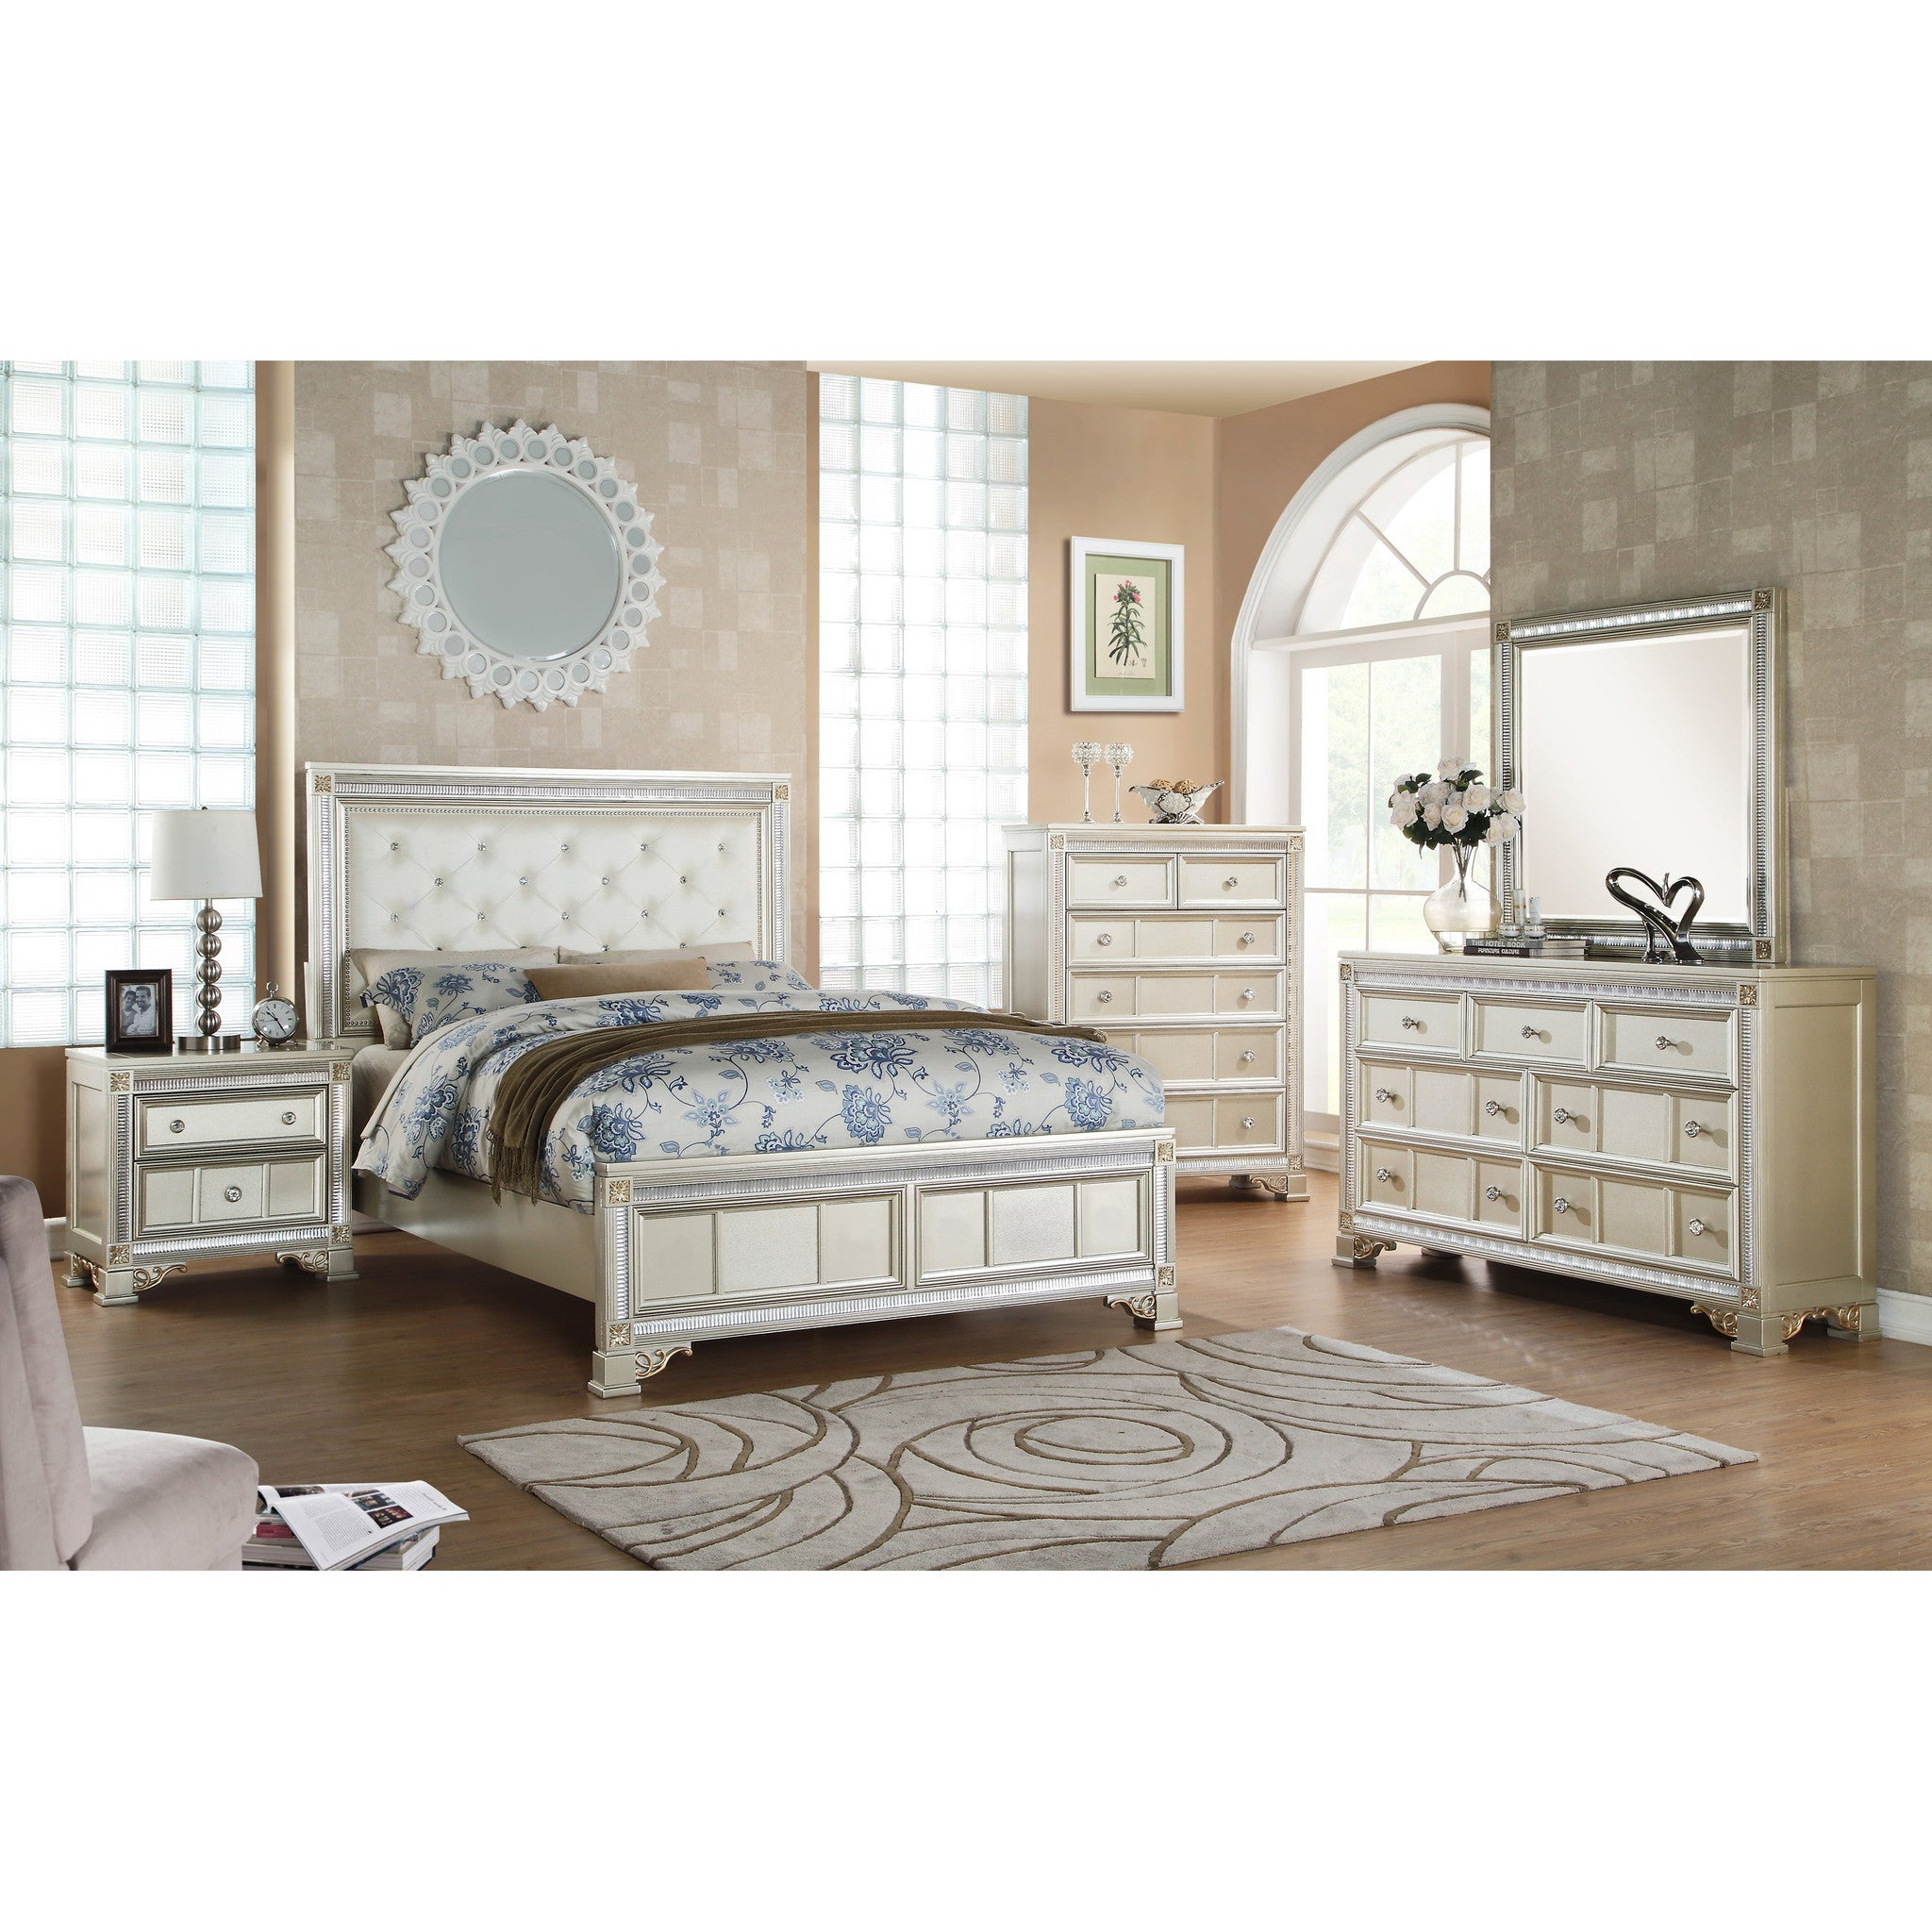 bed collection classic panel walnut set sevilla room media gallery bedroom newclassics new